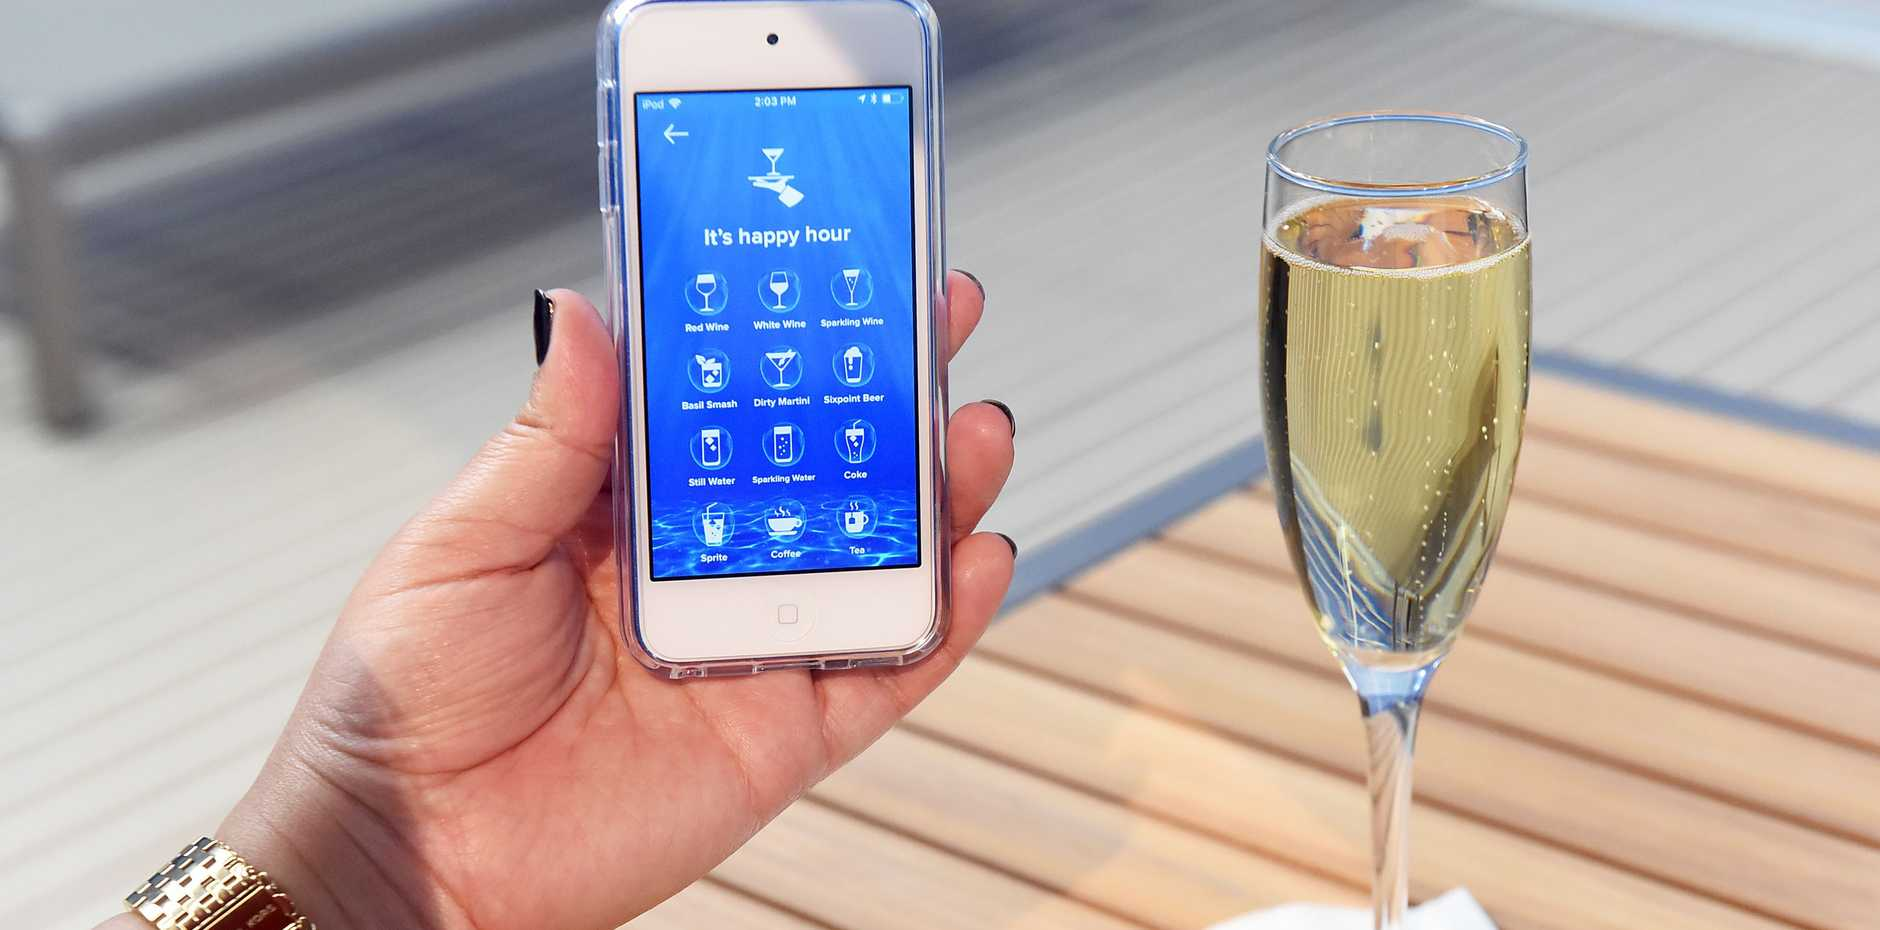 TECH SAVVY CARIBBEAN: A view of Royal Caribbean's future app which will let... guests order food and drink to be delivered to them anytime, anywhere on board.